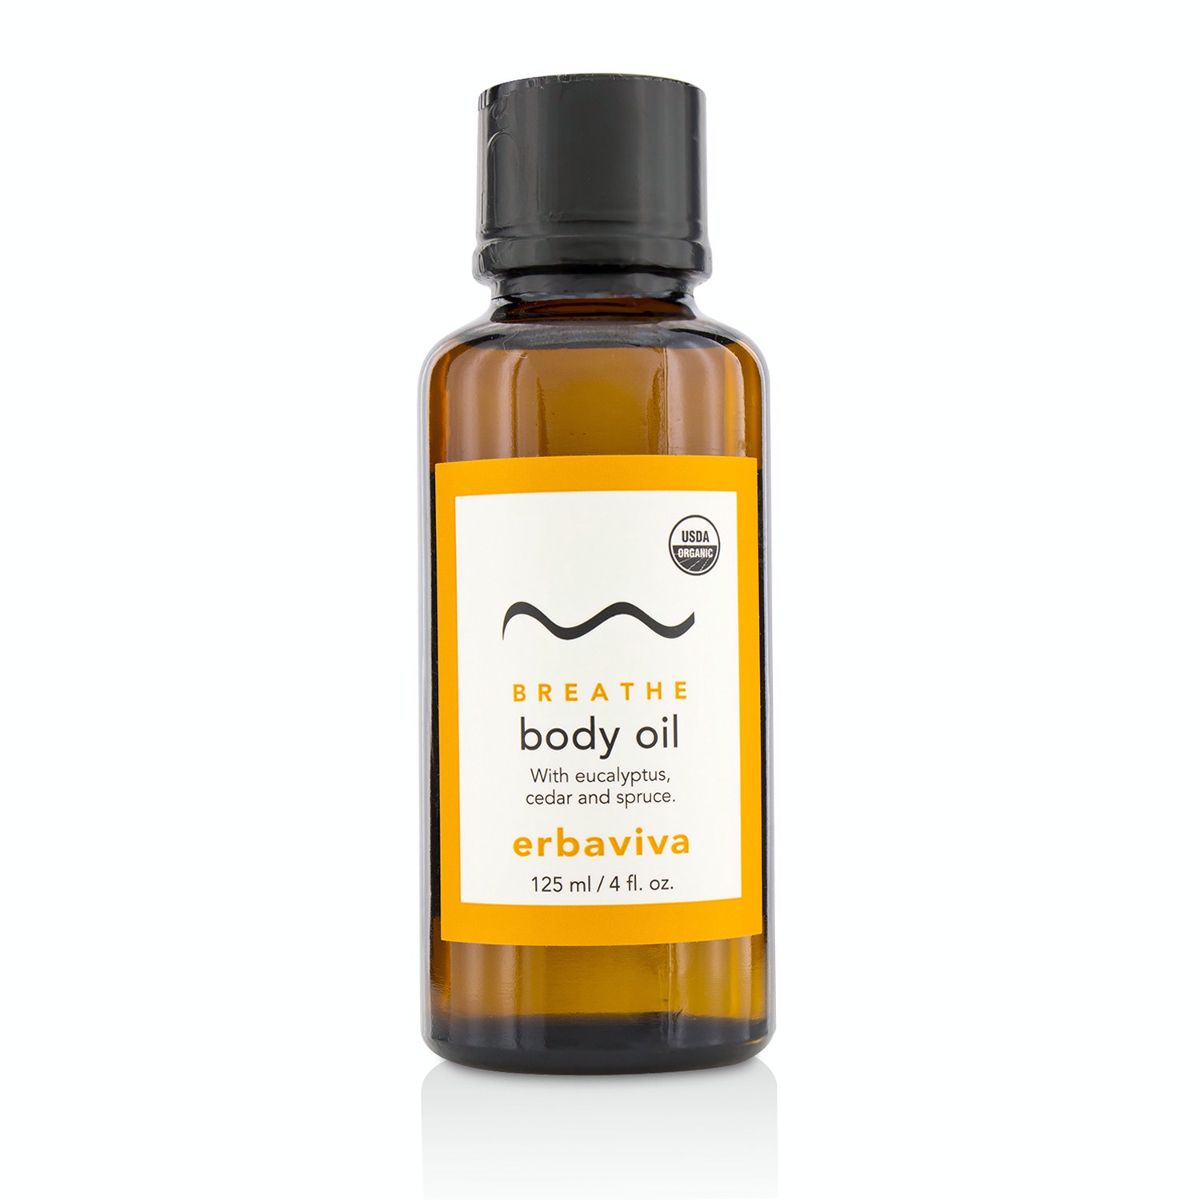 Breathe Body Oil Erbaviva Image